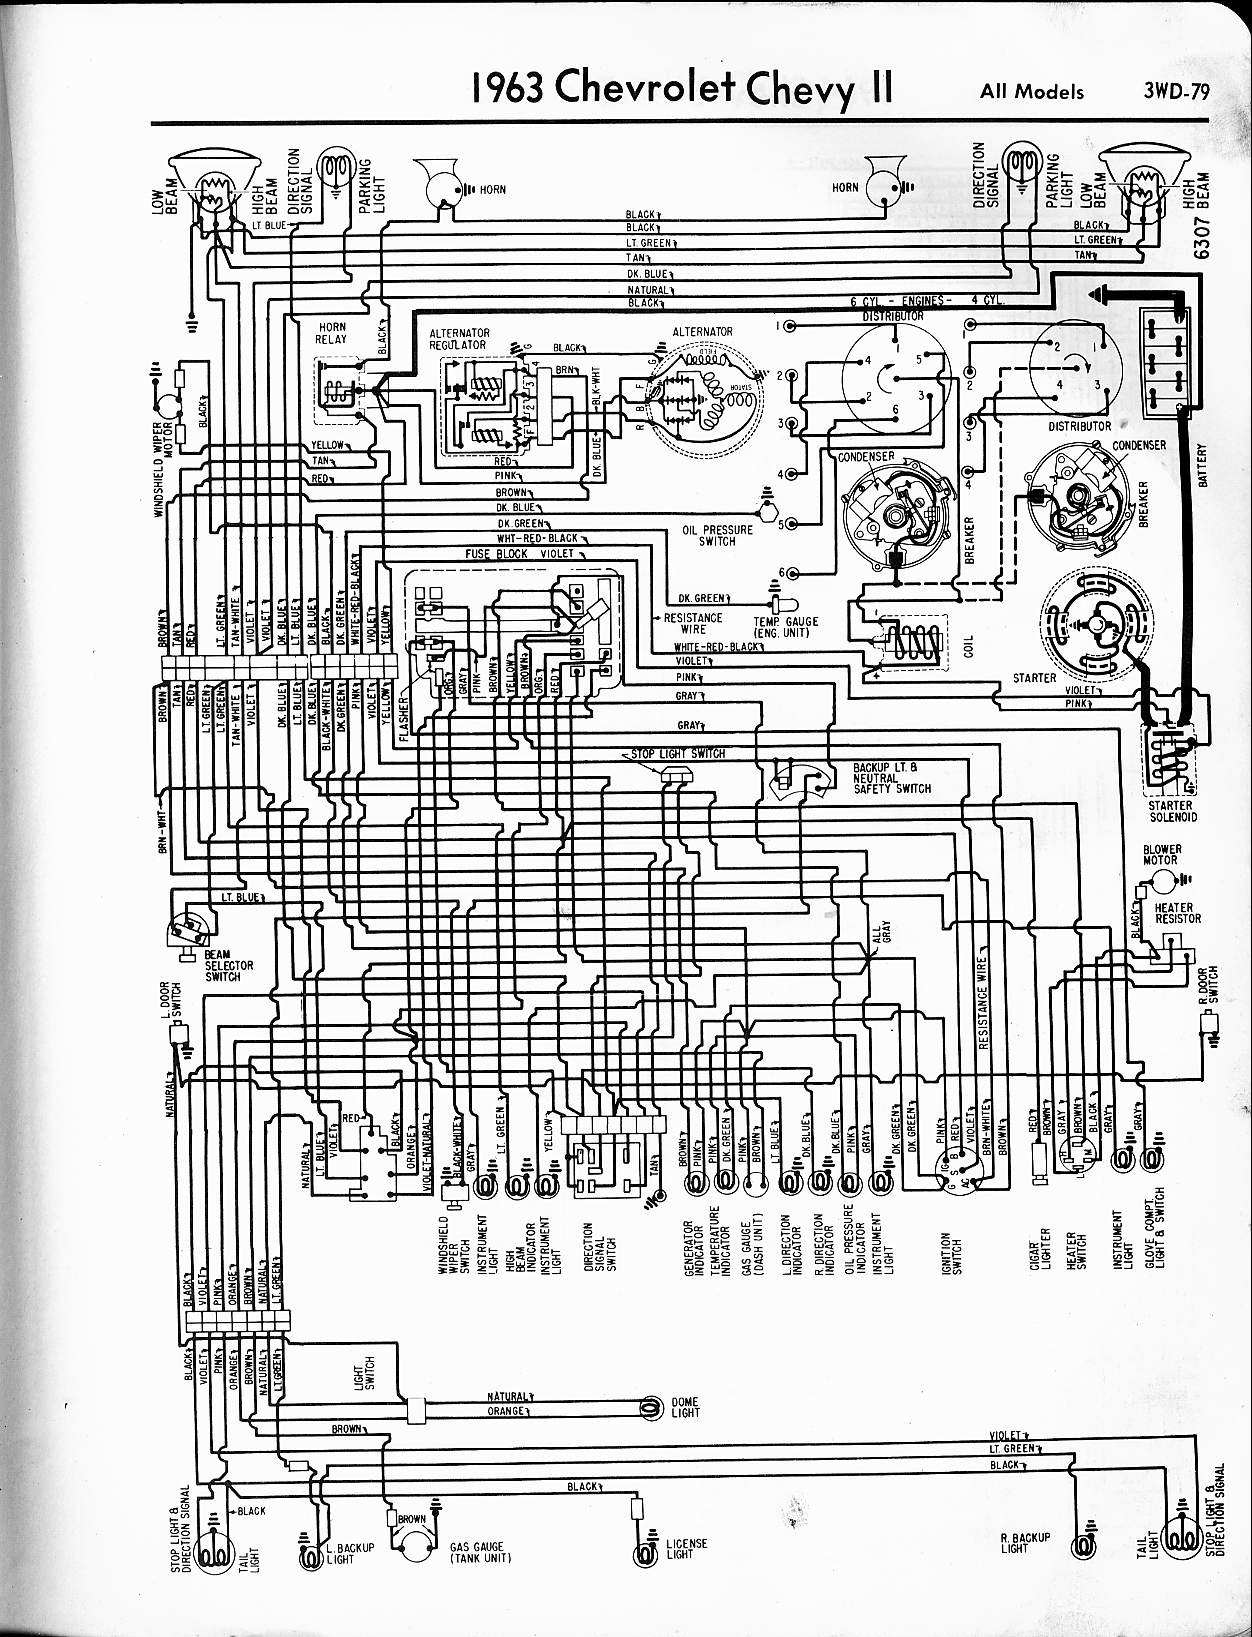 57 65 chevy wiring diagrams rh oldcarmanualproject com 1977 Chevy Wiring Harness Diagram 2002 Chevy Wiring Harness Diagram